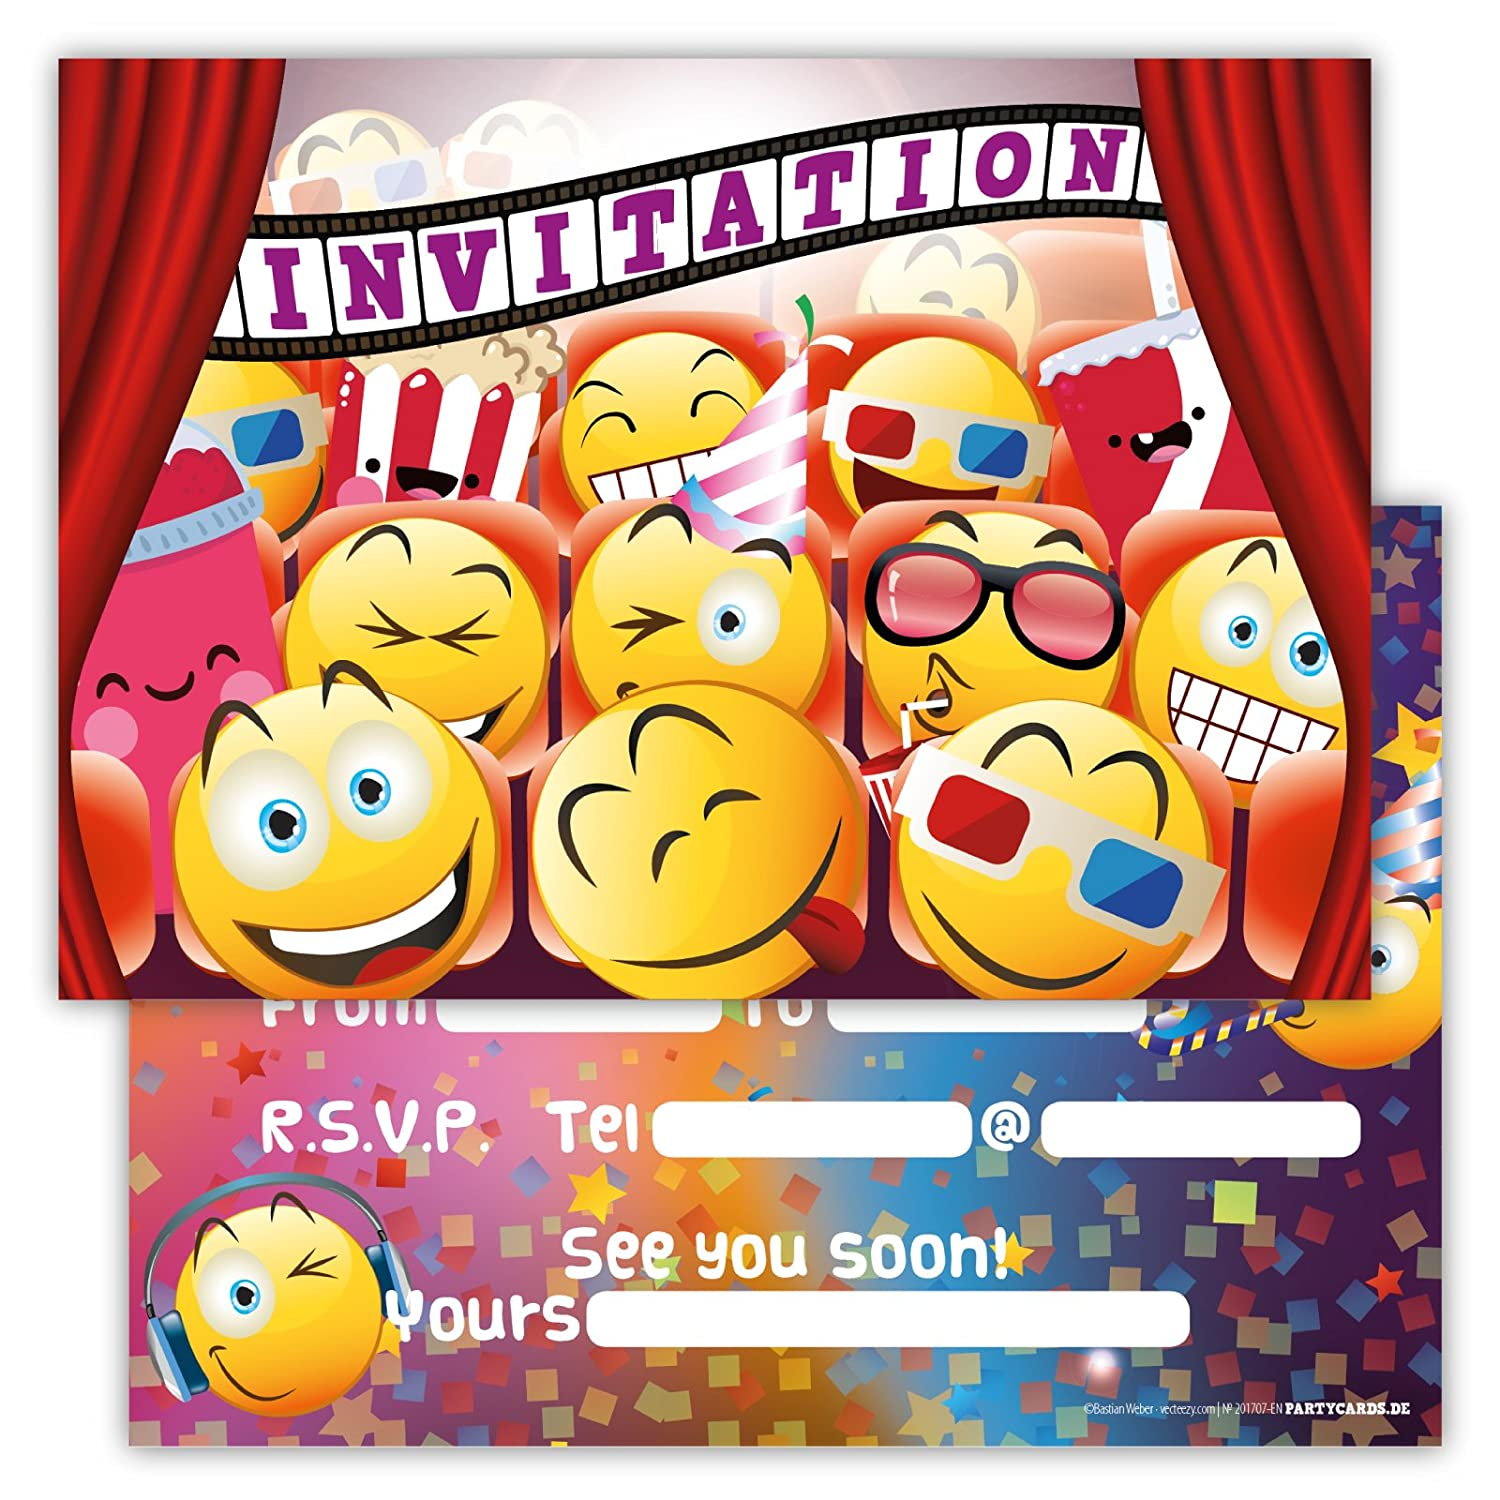 Funny Birthday Invitations Set Of 12 Cards For Boys Girls Kids Movie Cinema Party With Smiley Emoji Postcard Invitation Greetings Amazonin Toys